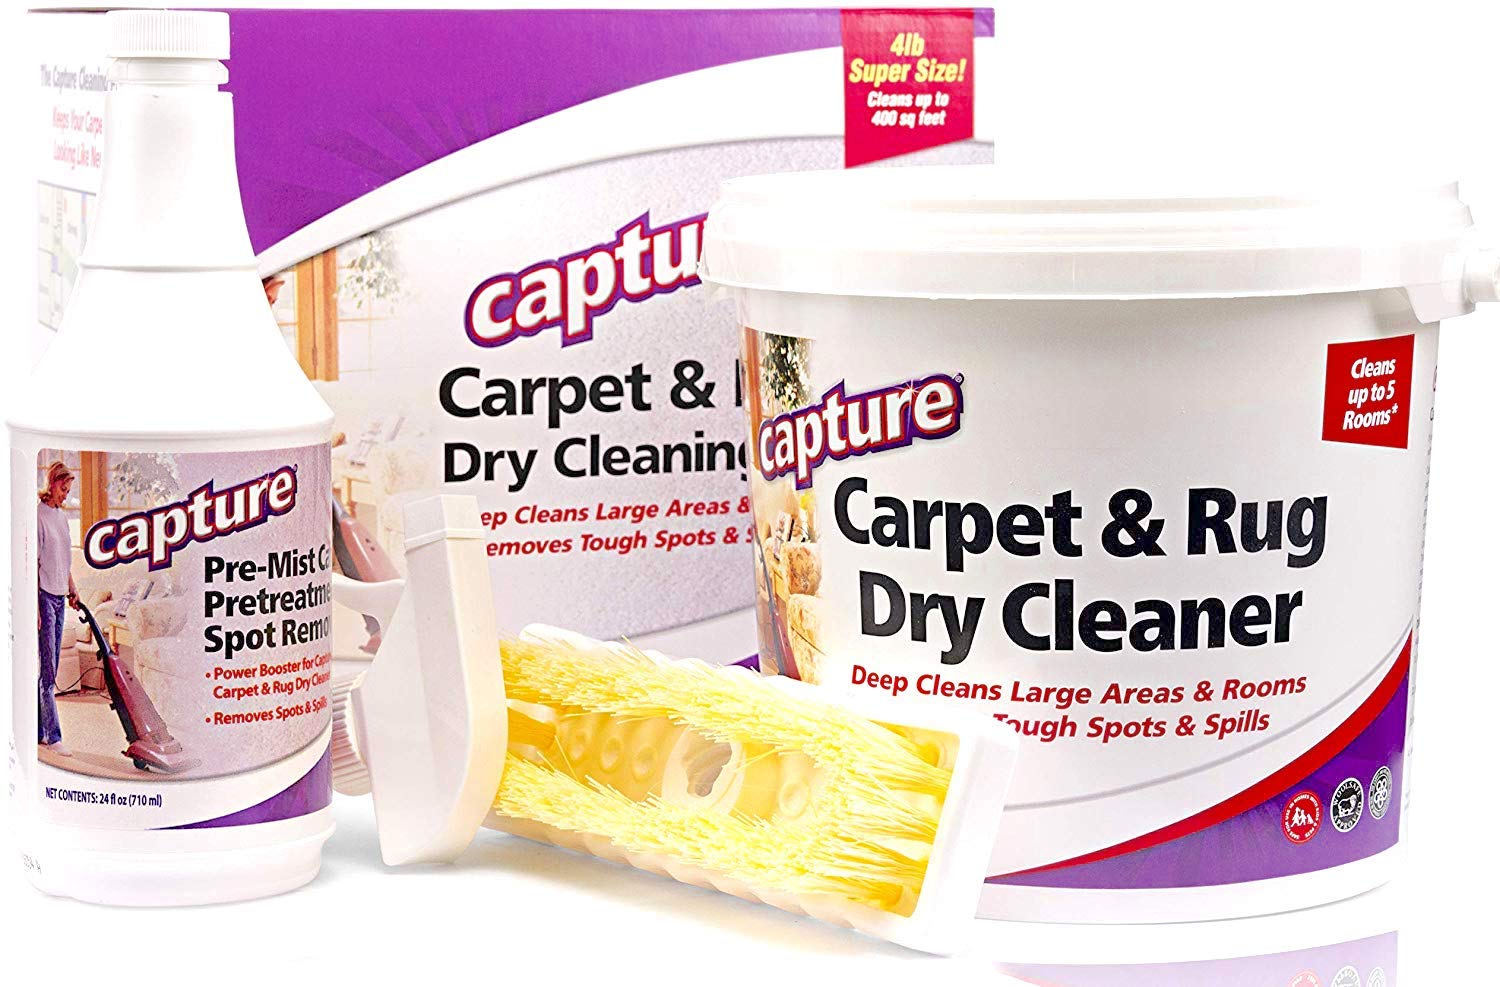 Capture Carpet Dry Cleaning Kit 400- Deodorize Stains Smell Moisture from Rug Furniture Clothes and Fabric, Pet Stains Odor and Smoke Too